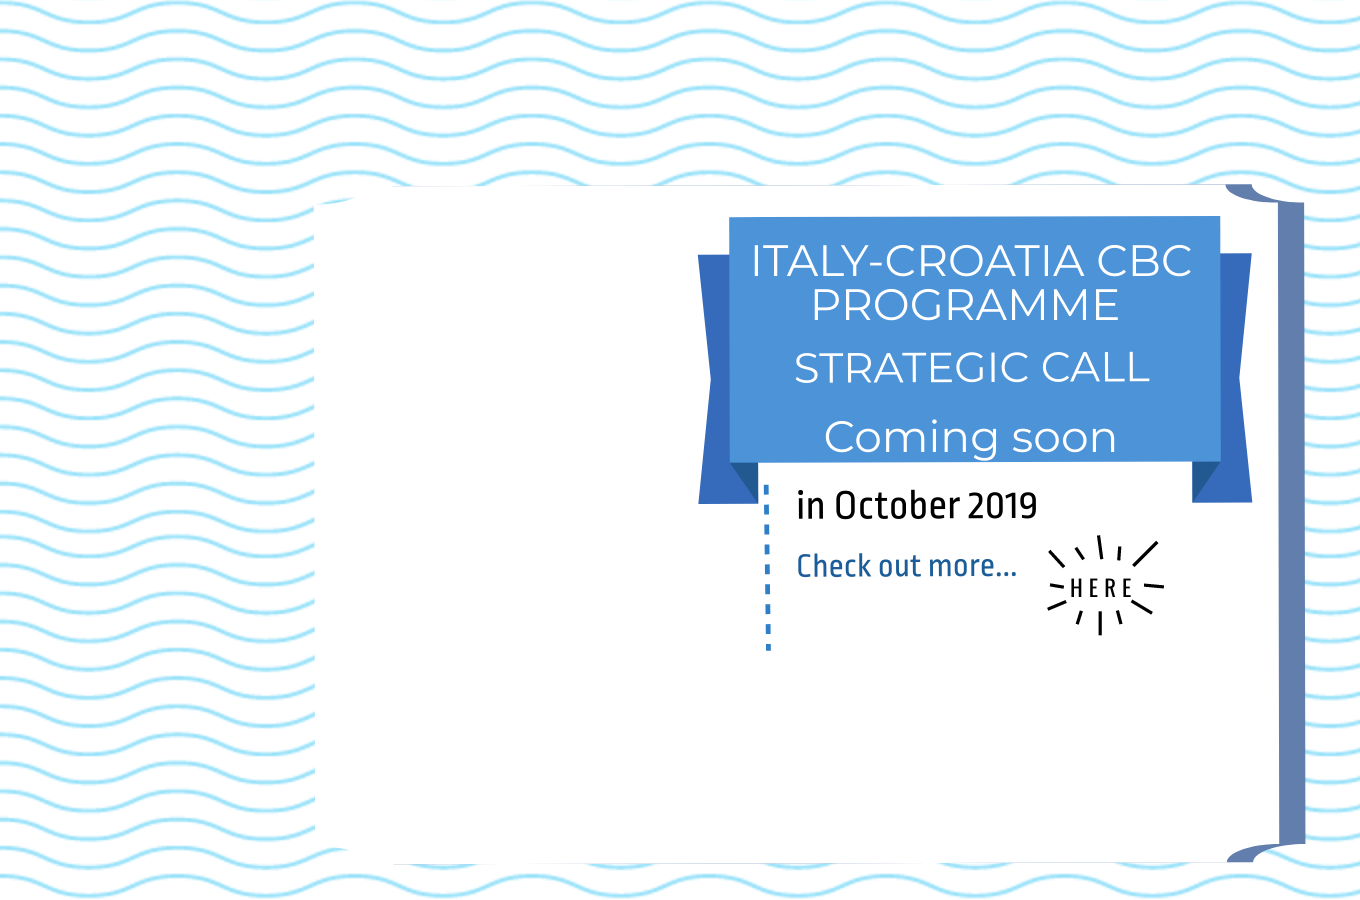 Pre-call announcement for Strategic Projects of the Interreg Italy-Croatia Programme